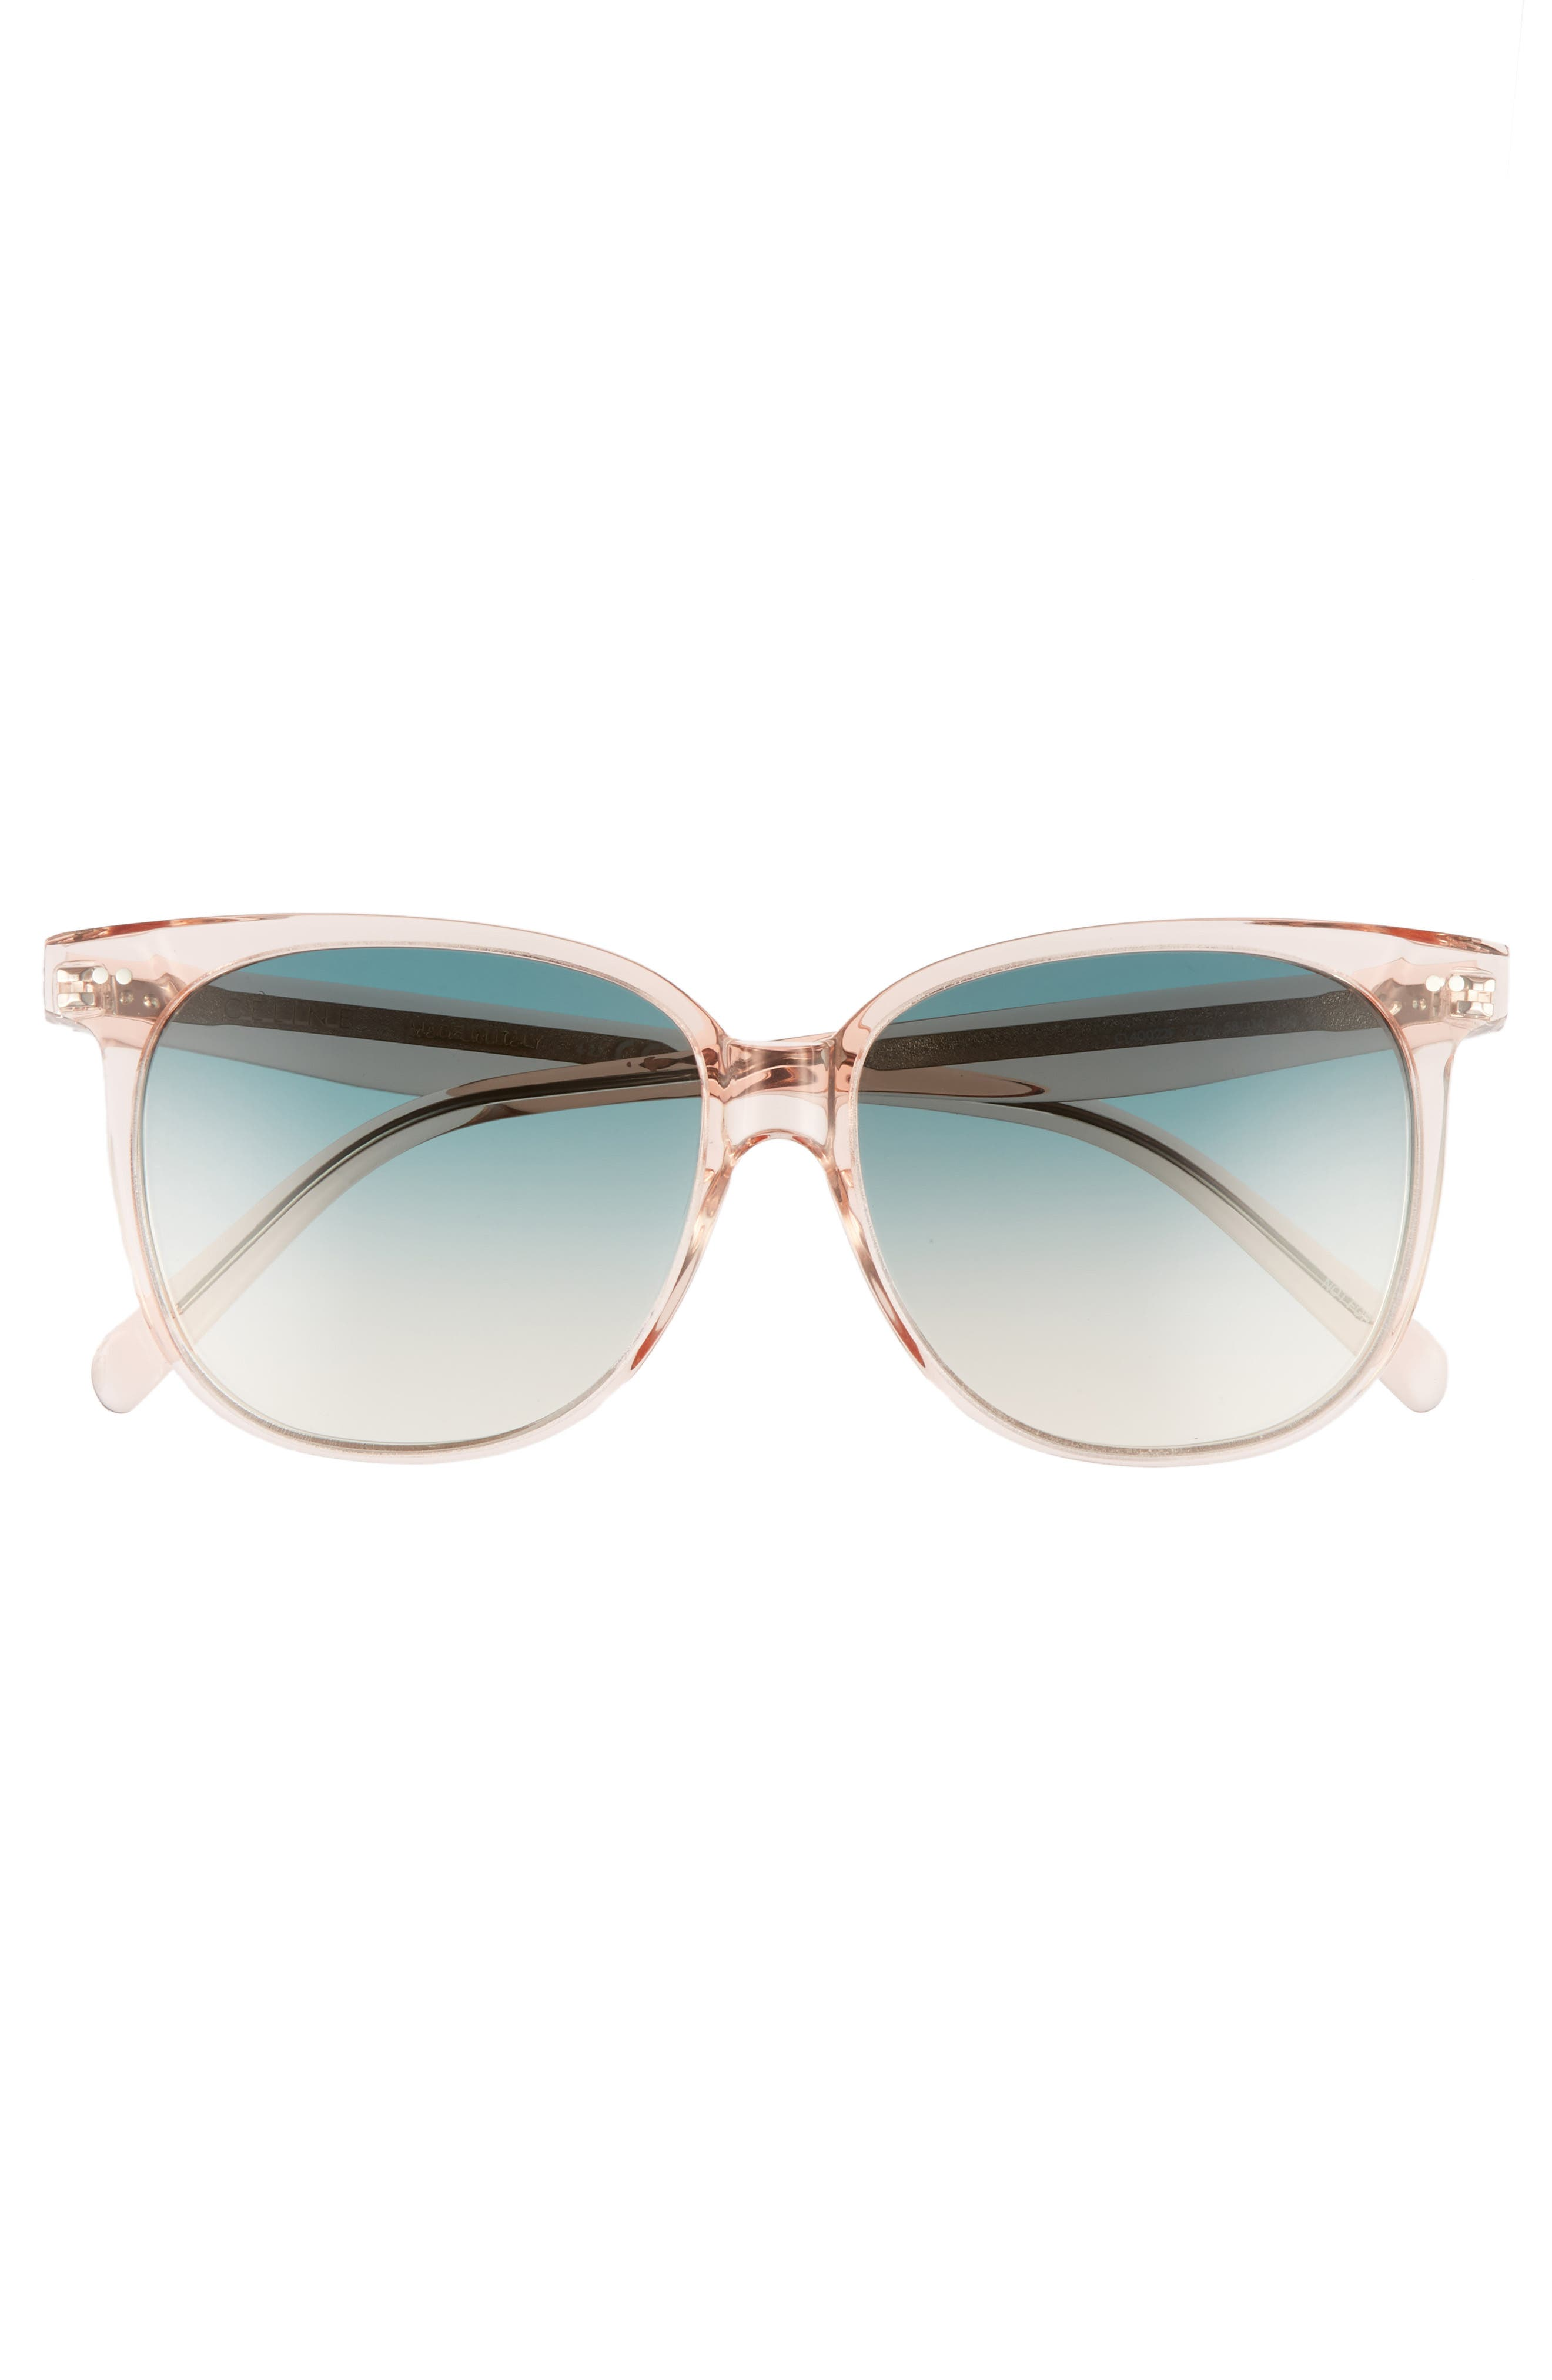 Special Fit 58mm Square Sunglasses,                             Alternate thumbnail 3, color,                             Baby Pink/ Turquoise